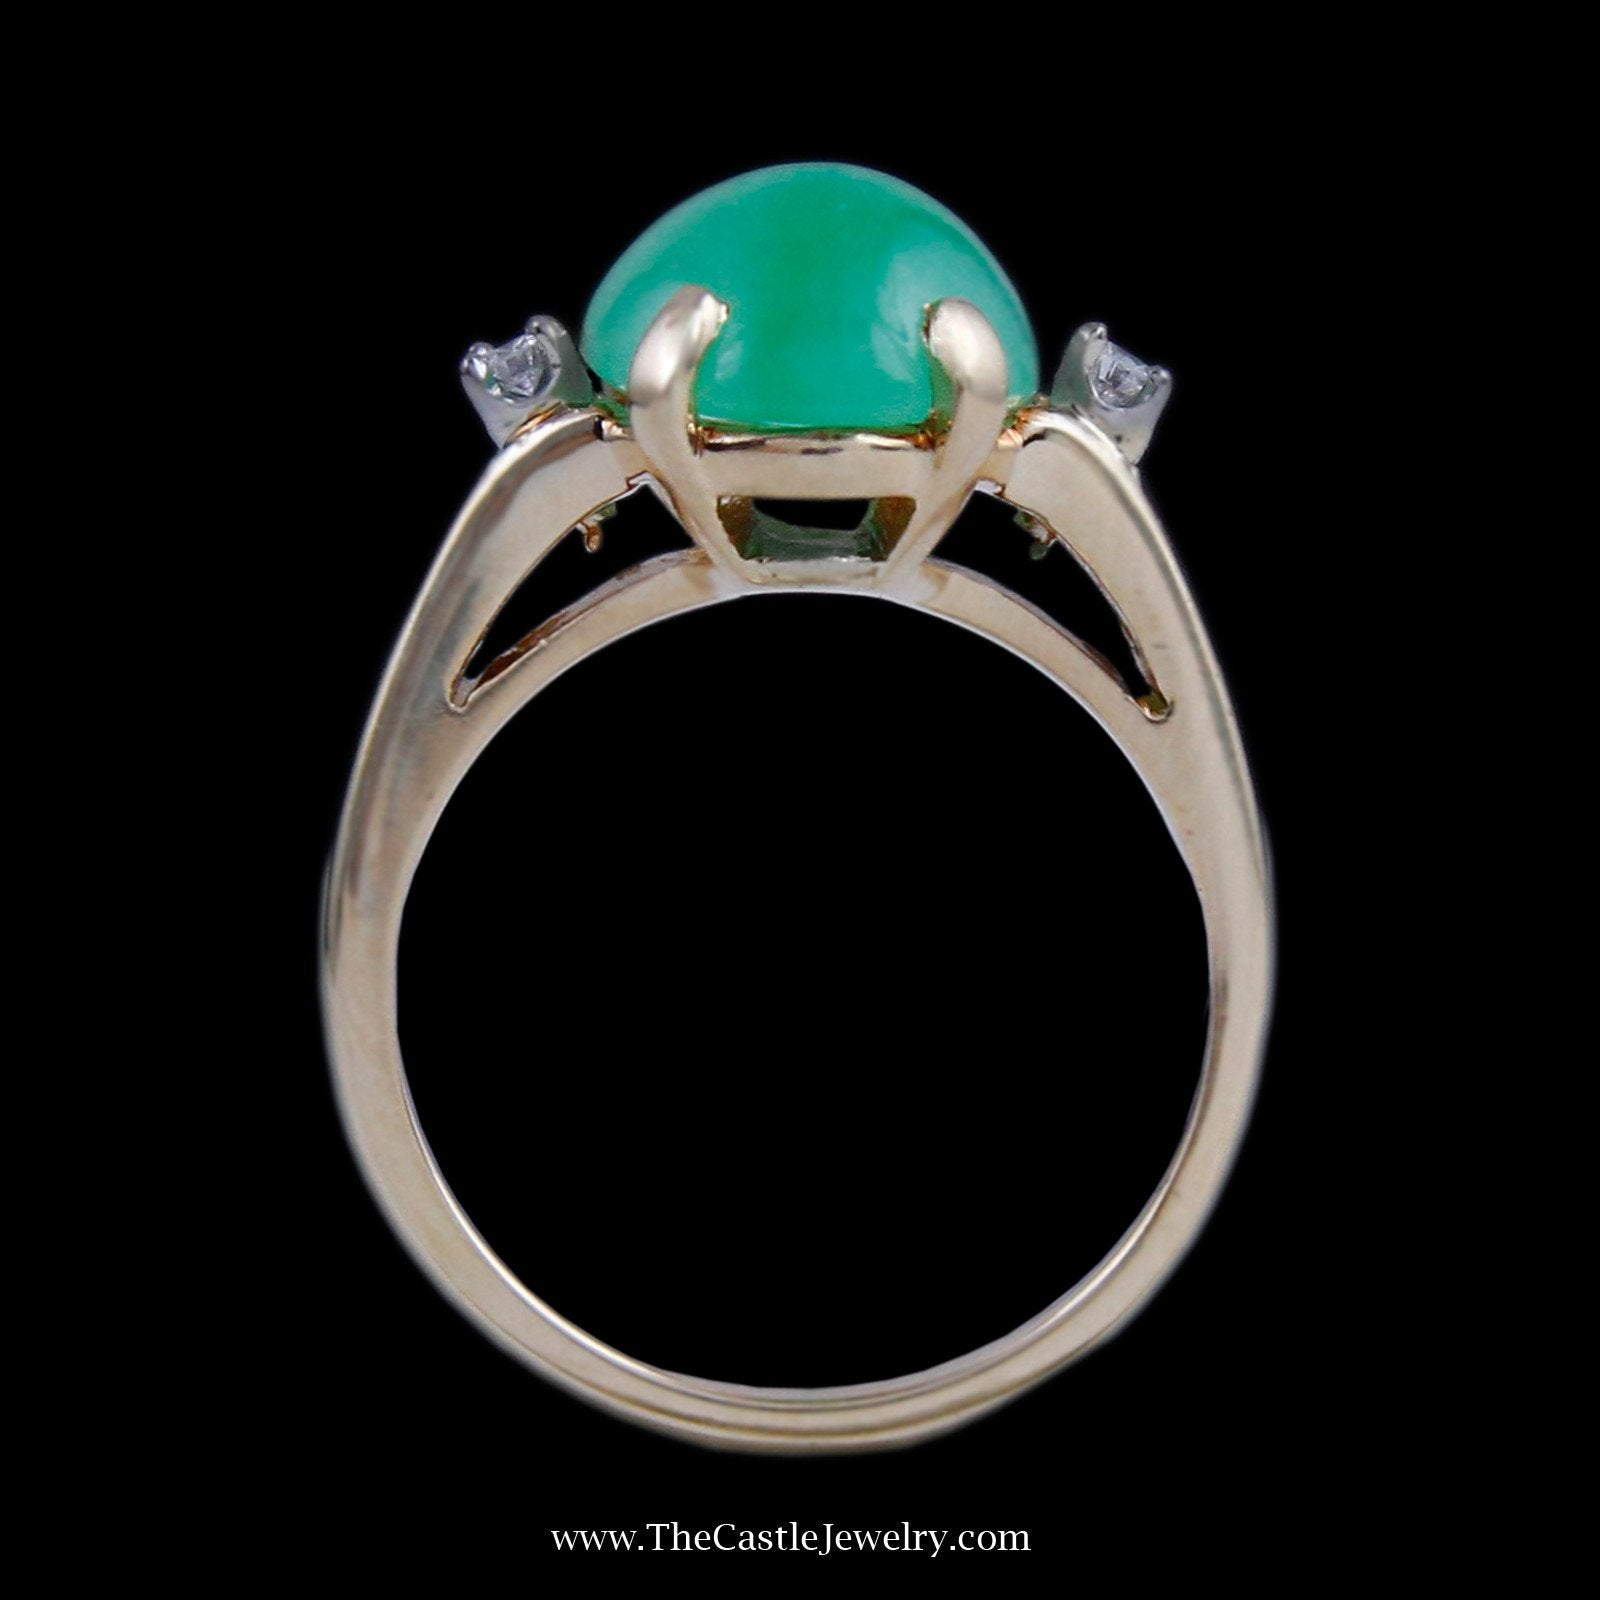 Beautiful Cabochon Jade with Round Brilliant Cut Diamond Accents in Yellow Gold-1